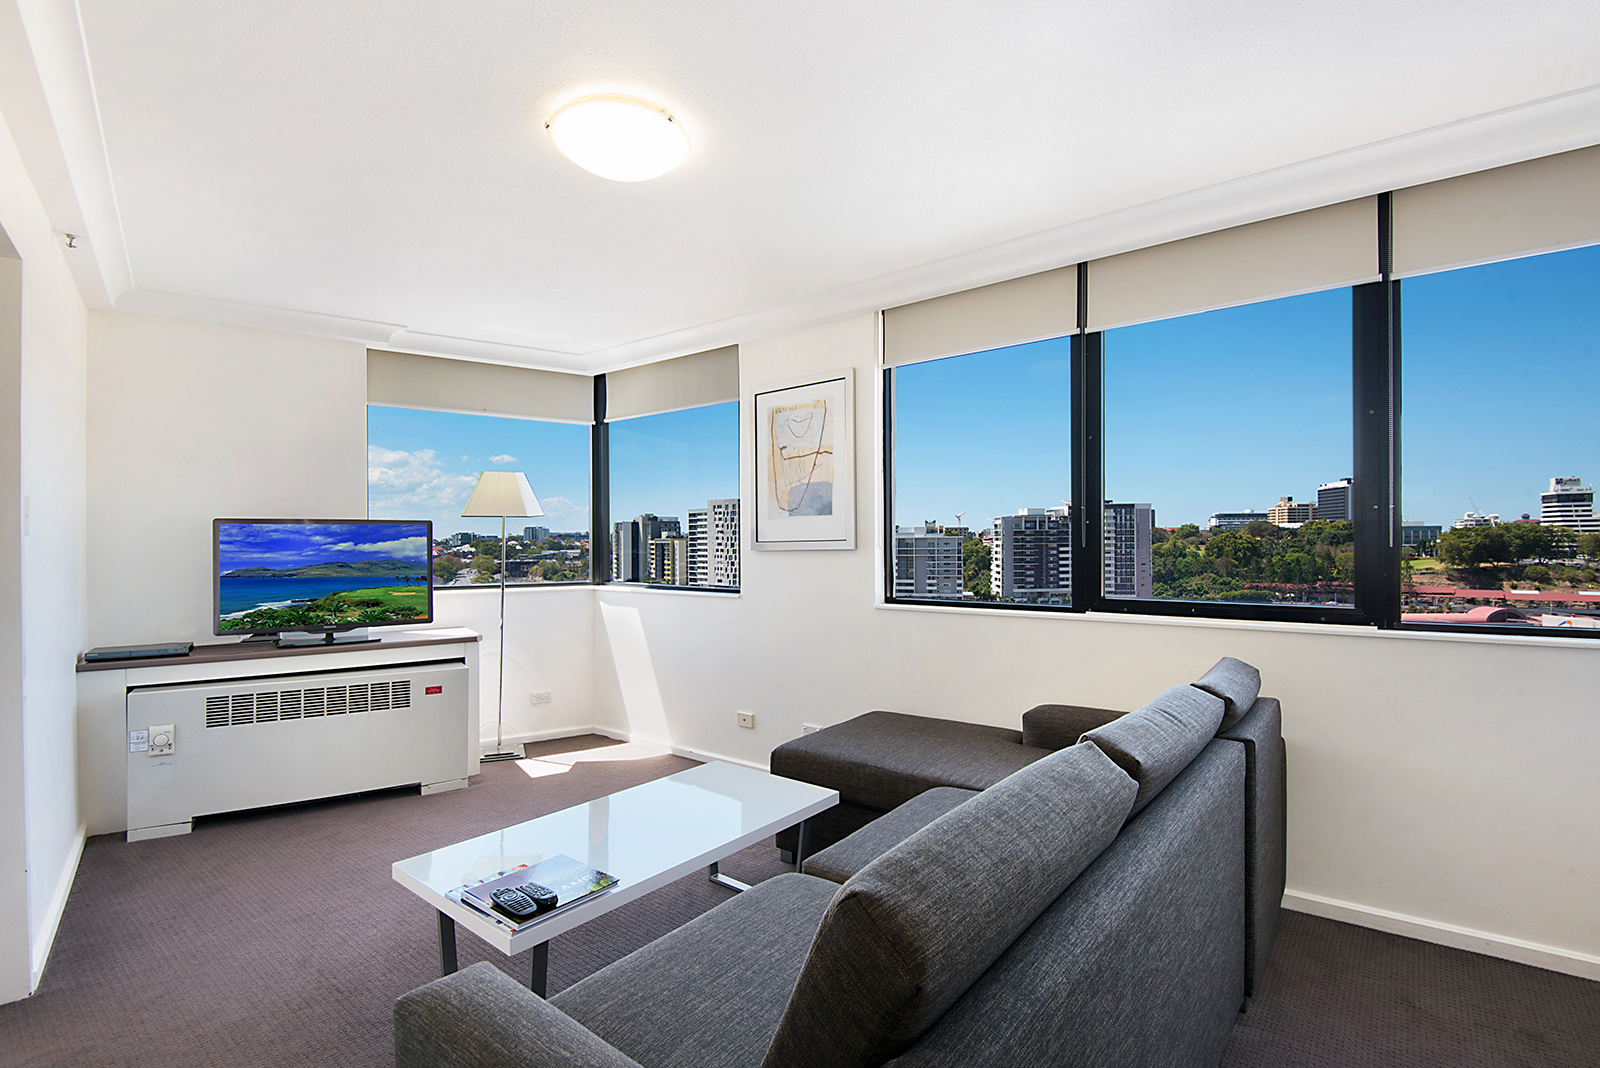 1 Bedroom Apartment Brisbane 142 293 North Quay Brisbane City 4000 Sold 1 Bedroom Apartment